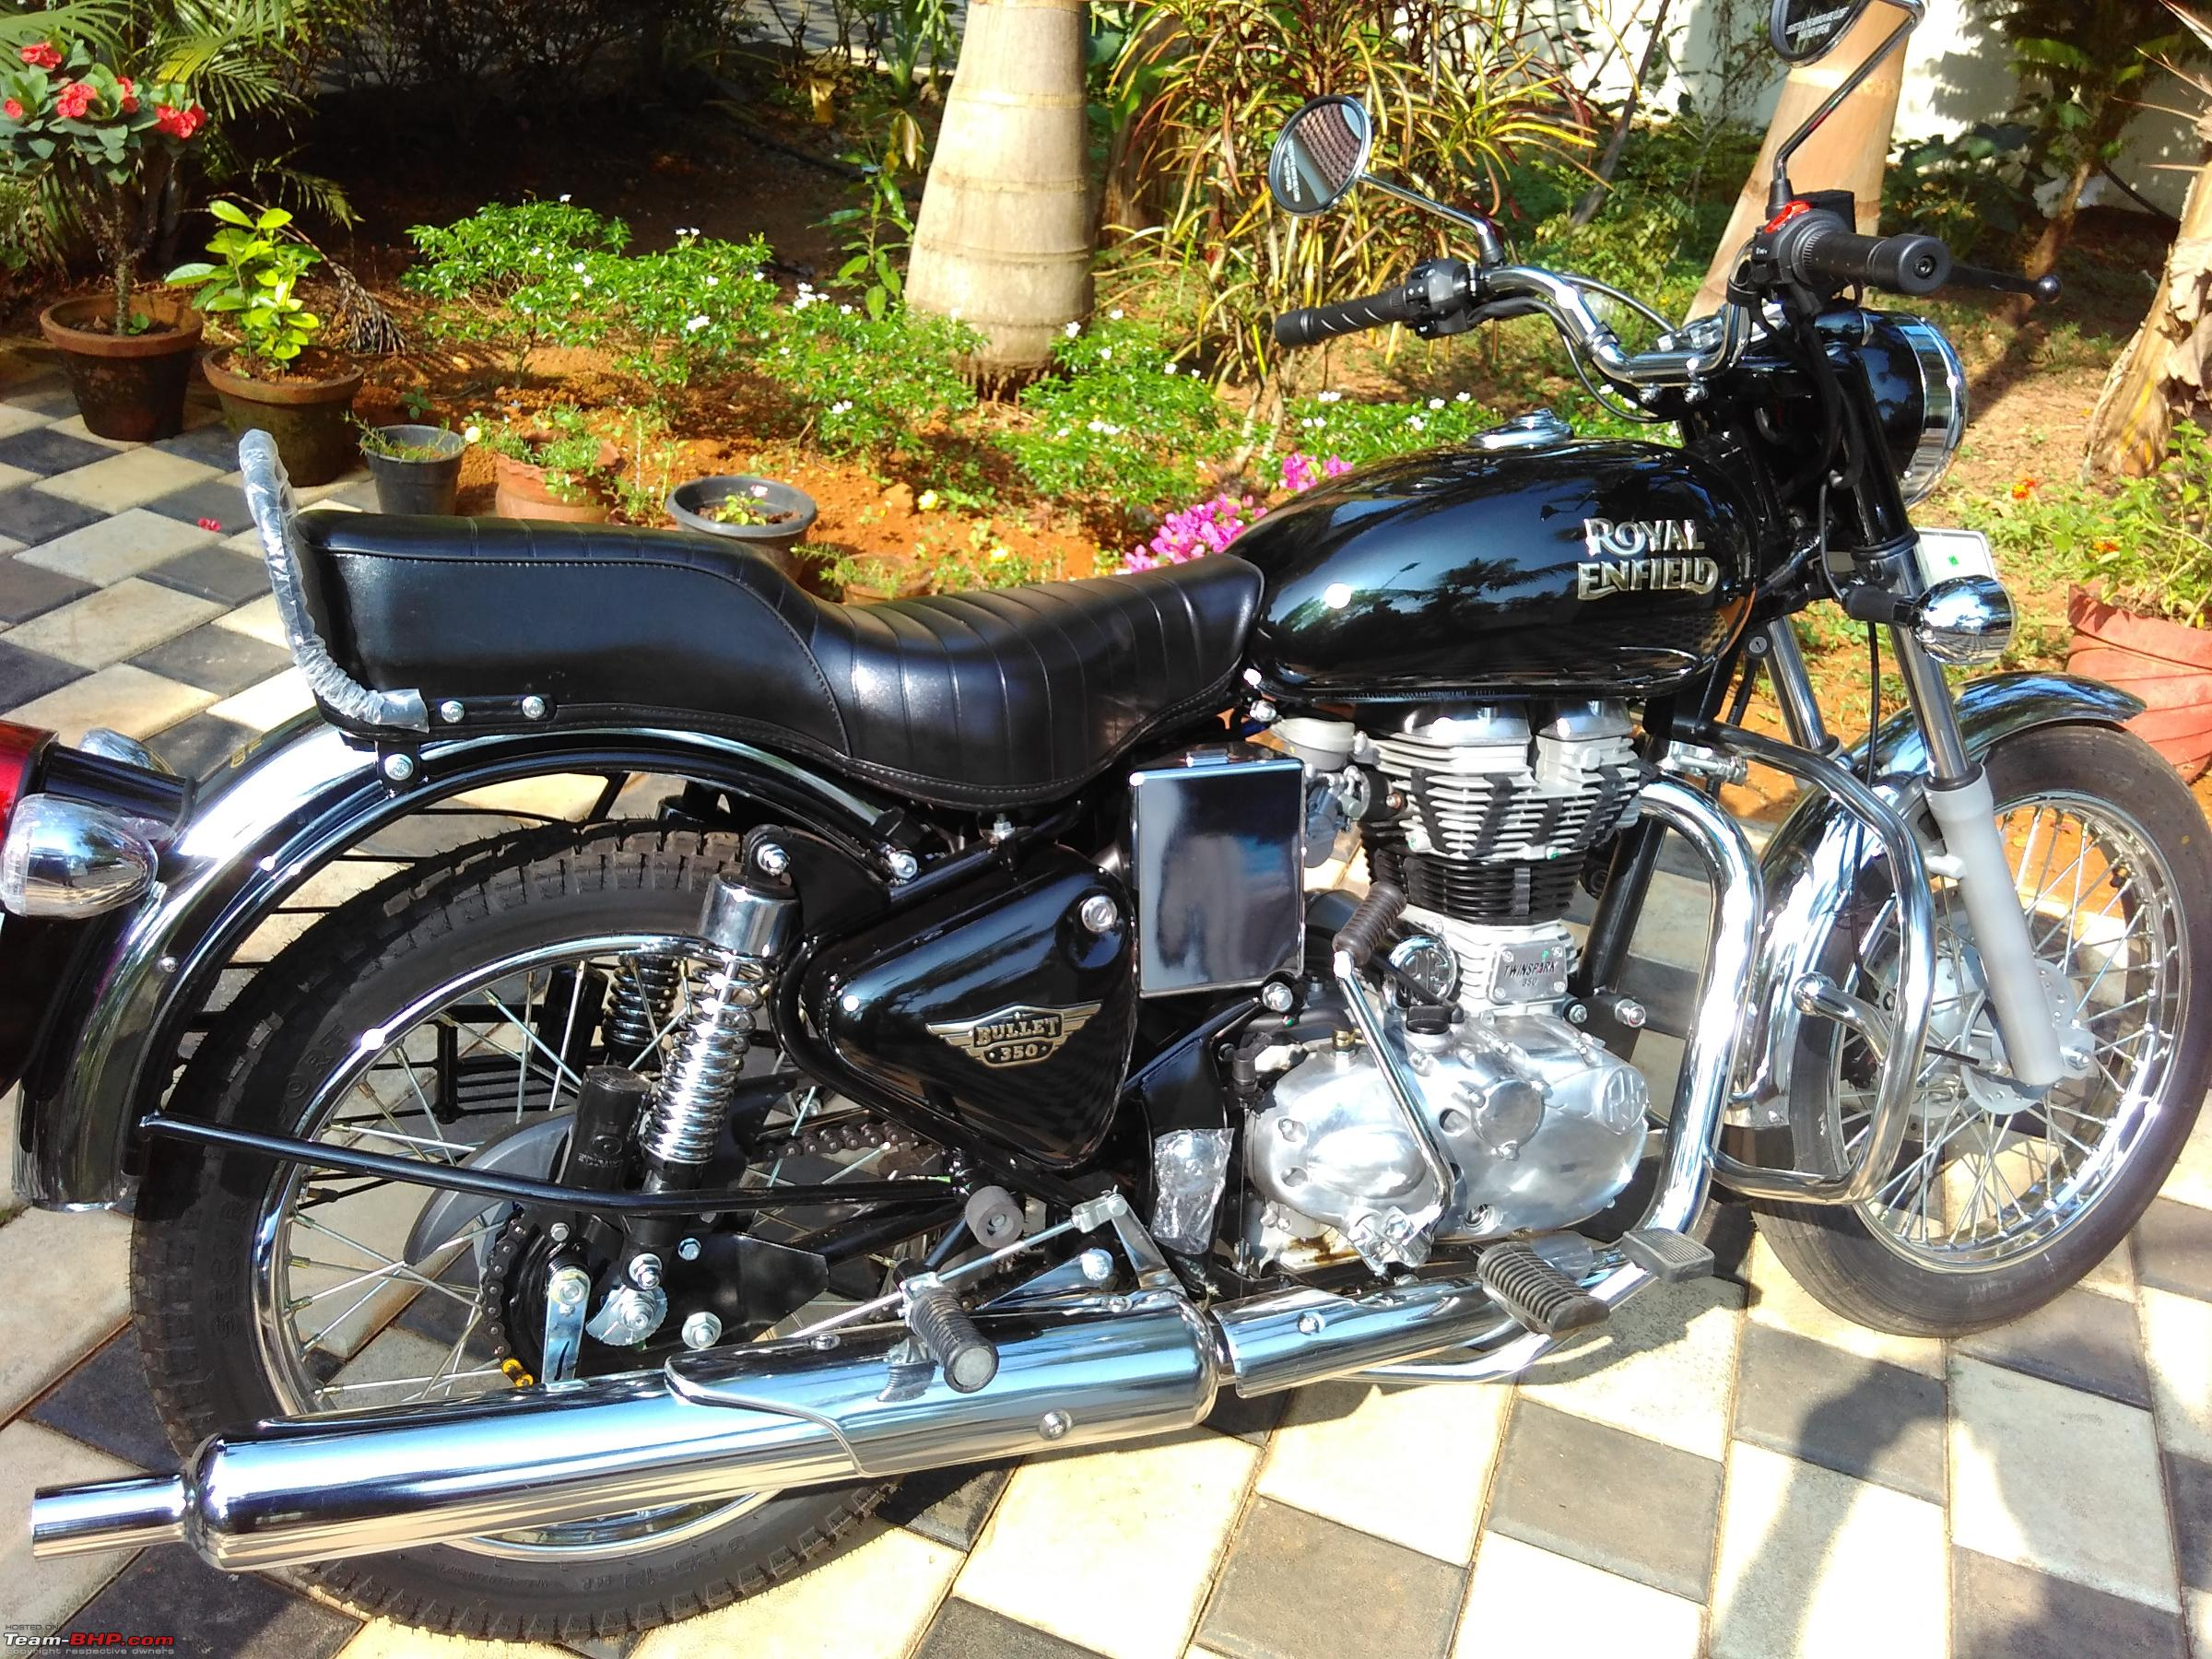 Electrified My Royal Enfield Electra Team Bhp